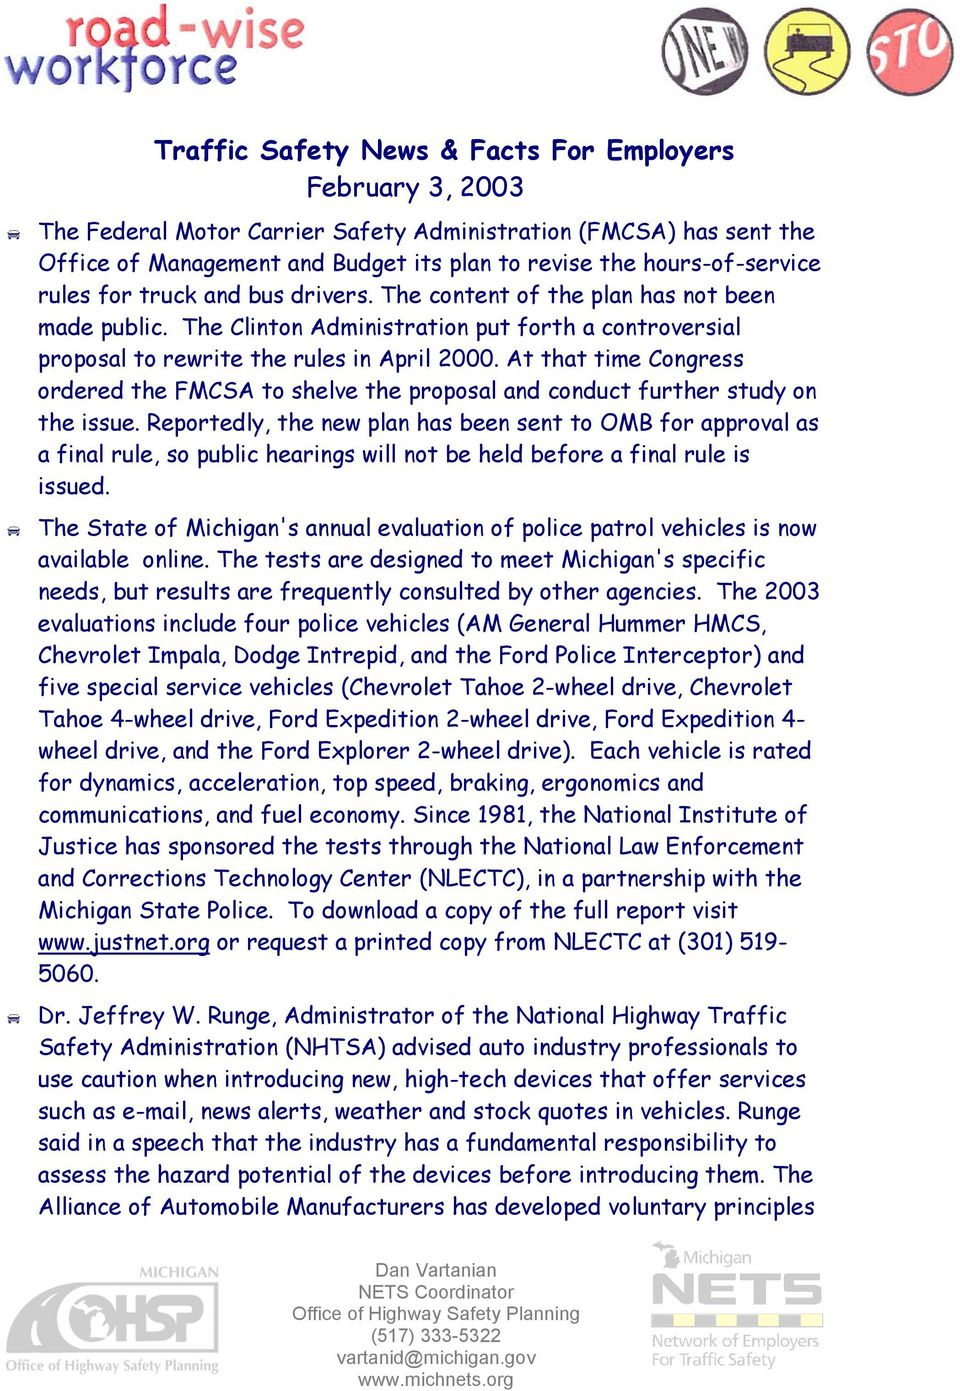 At that time Congress ordered the FMCSA to shelve the proposal and conduct further study on the issue.